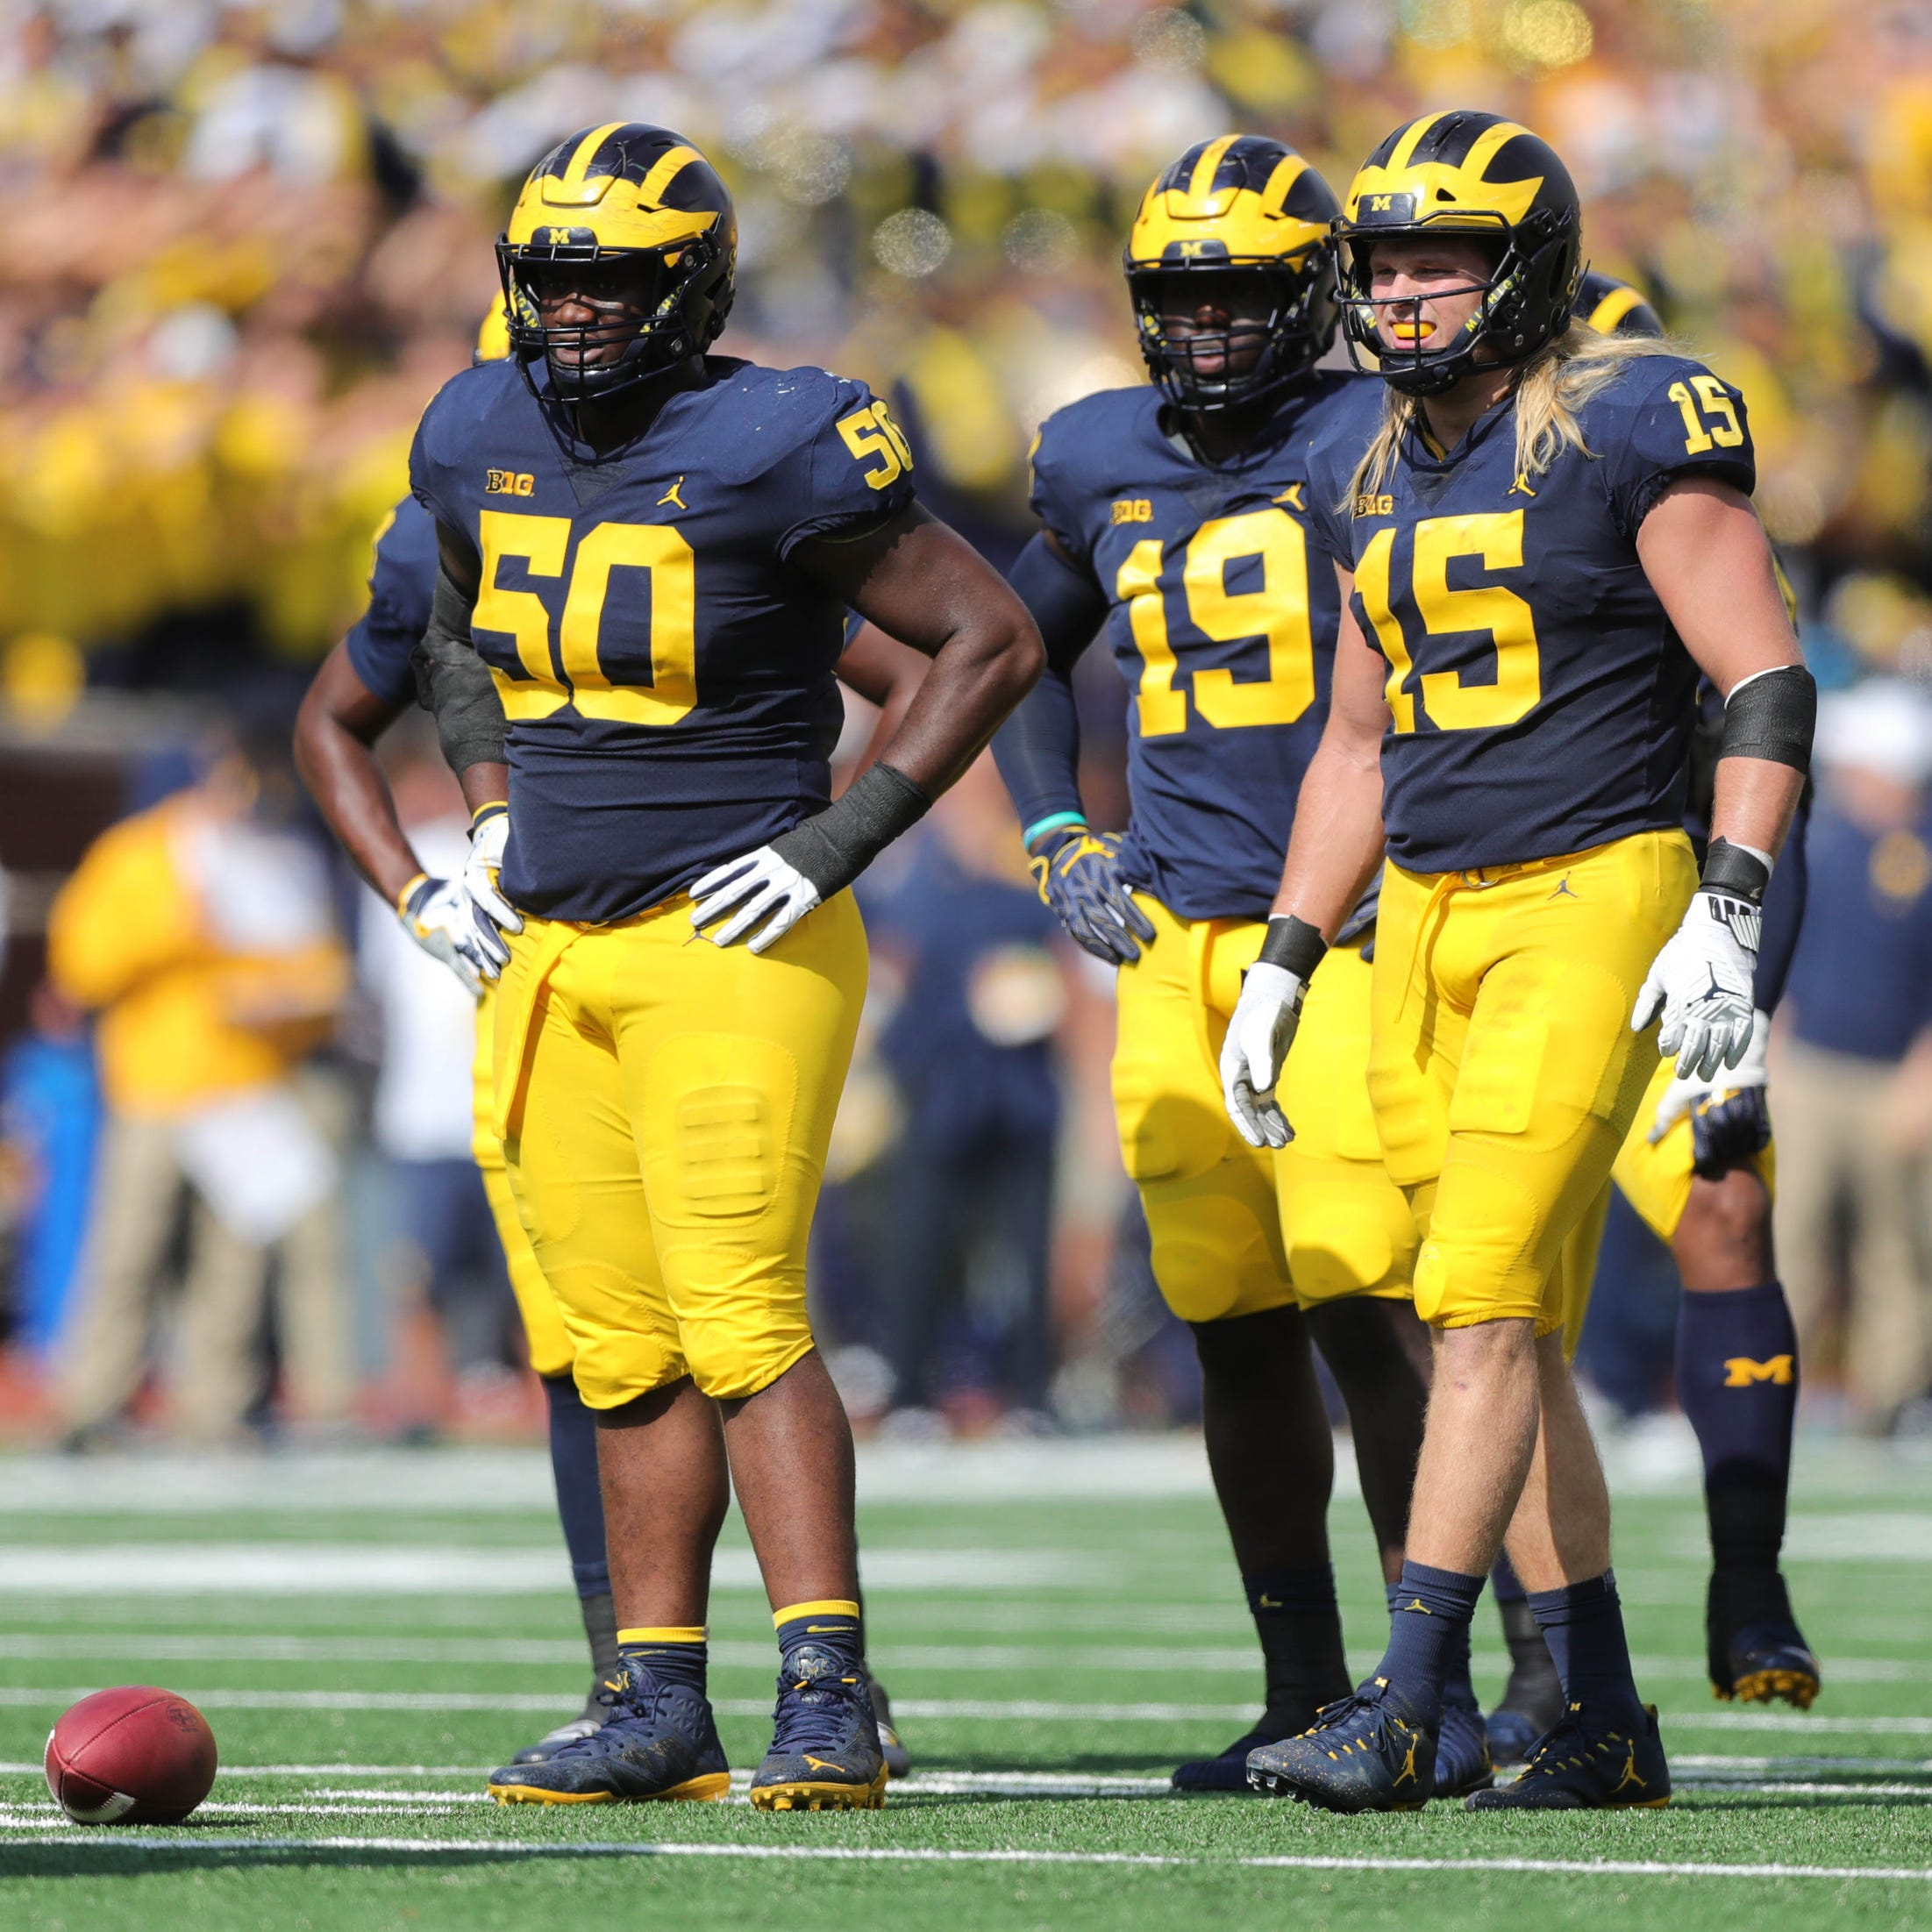 New Michigan defensive line coach Shawn Nua not starting from scratch